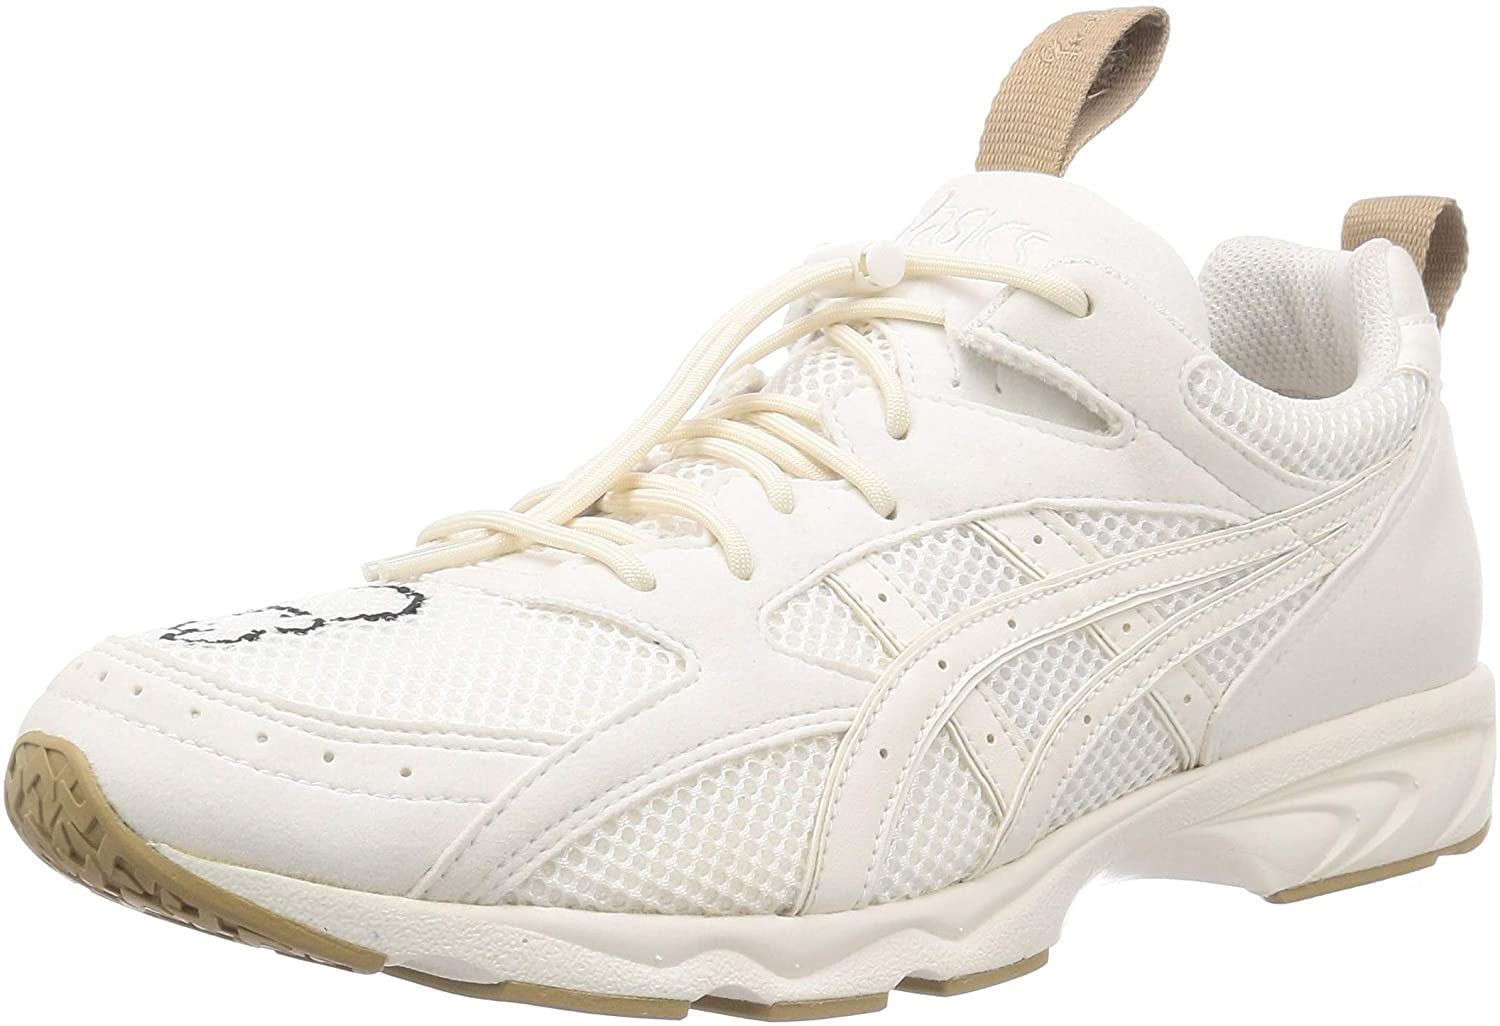 yu-nagaba-asics-tarther-magic-gel-ptg-collaboration-apparel-release-20200904